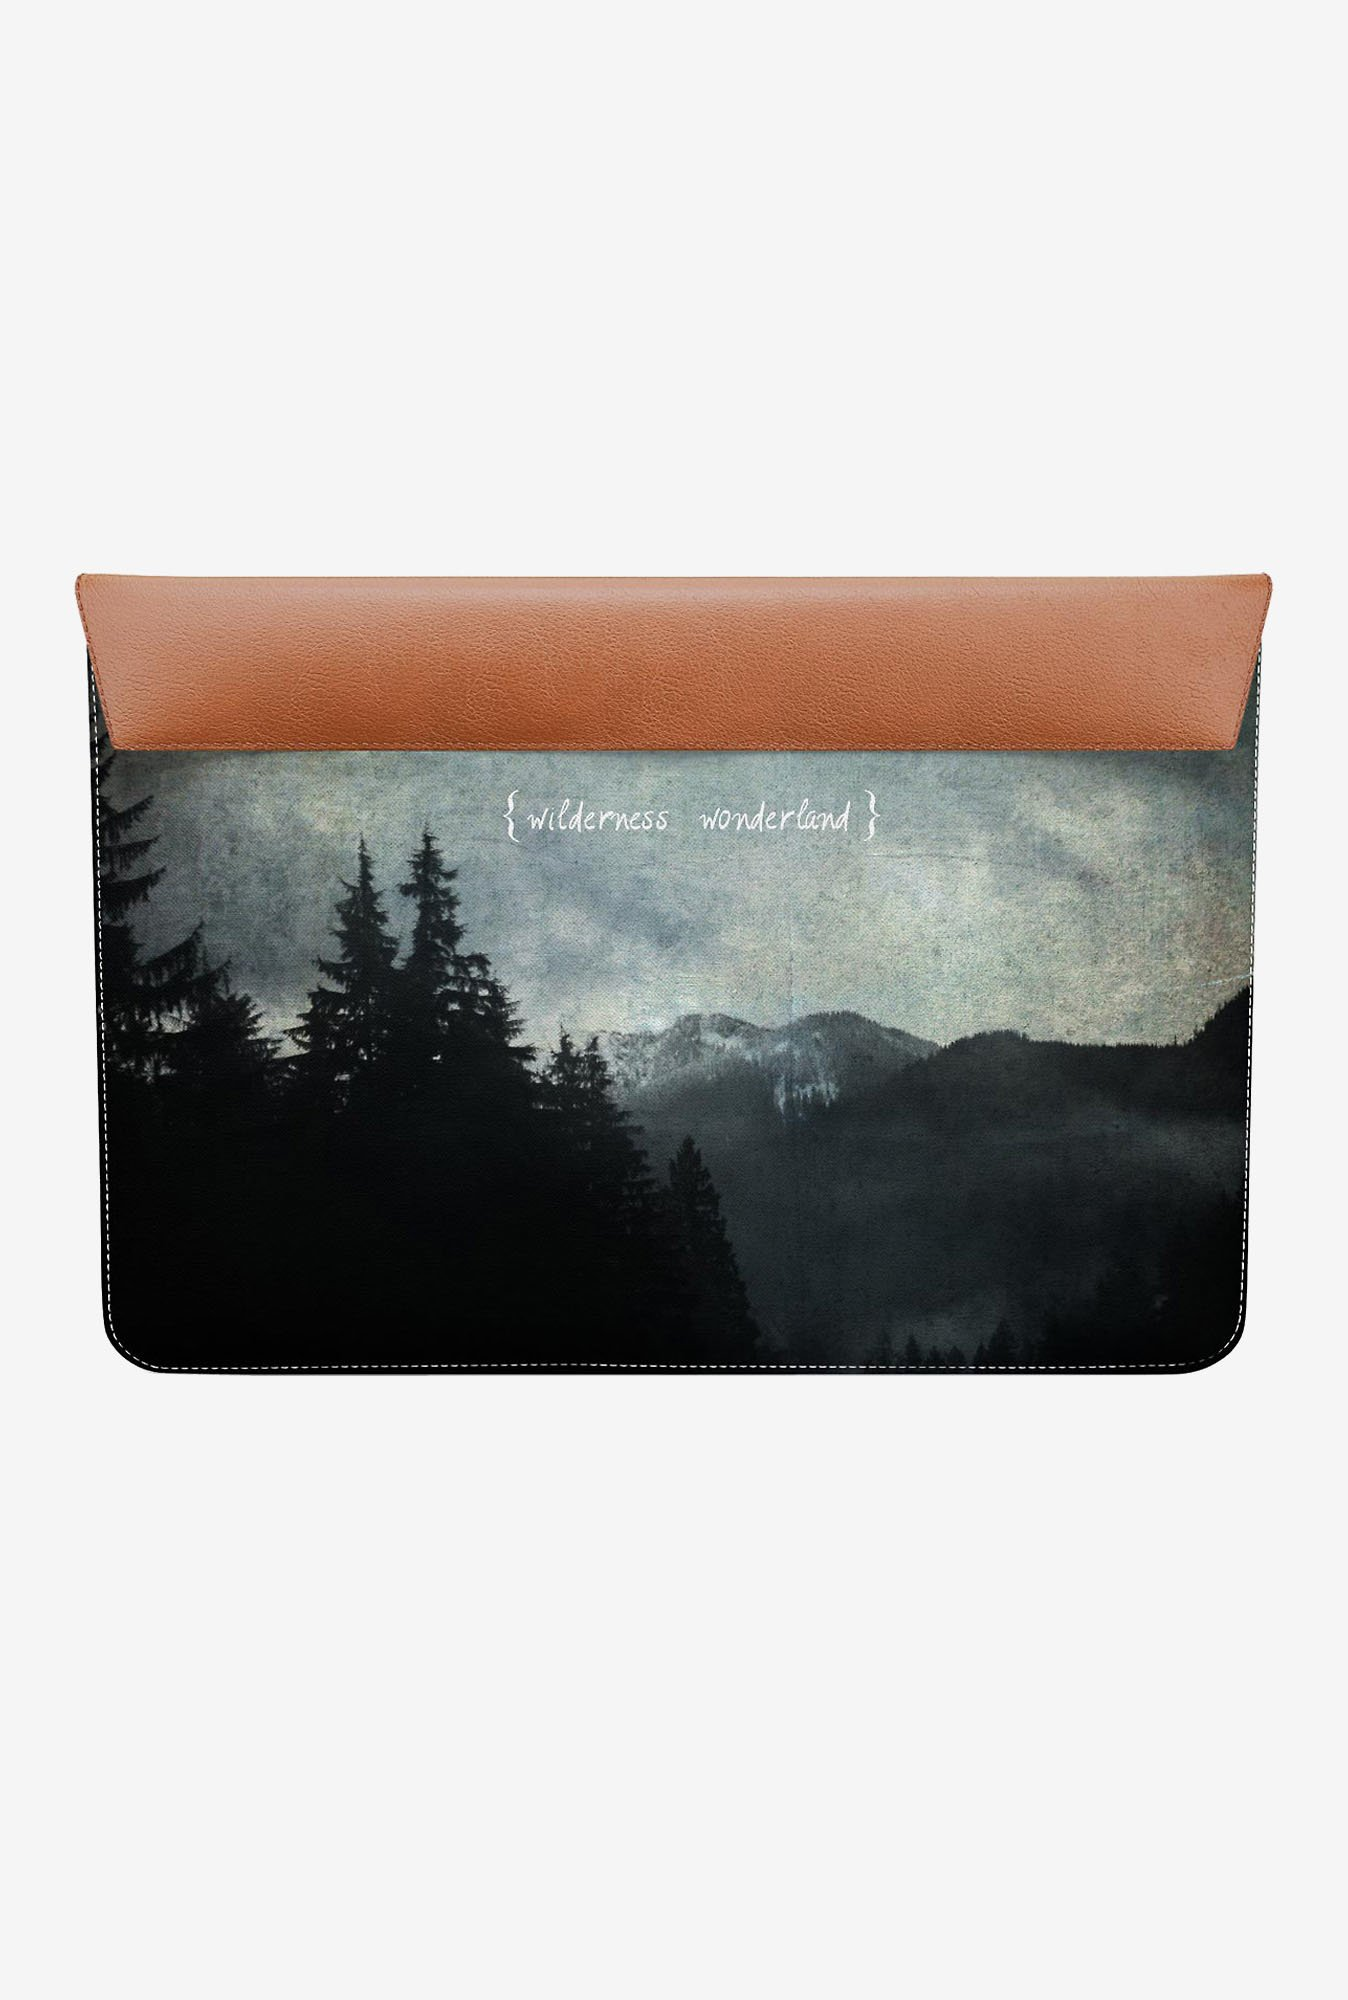 DailyObjects Wonderland MacBook Air 11 Envelope Sleeve